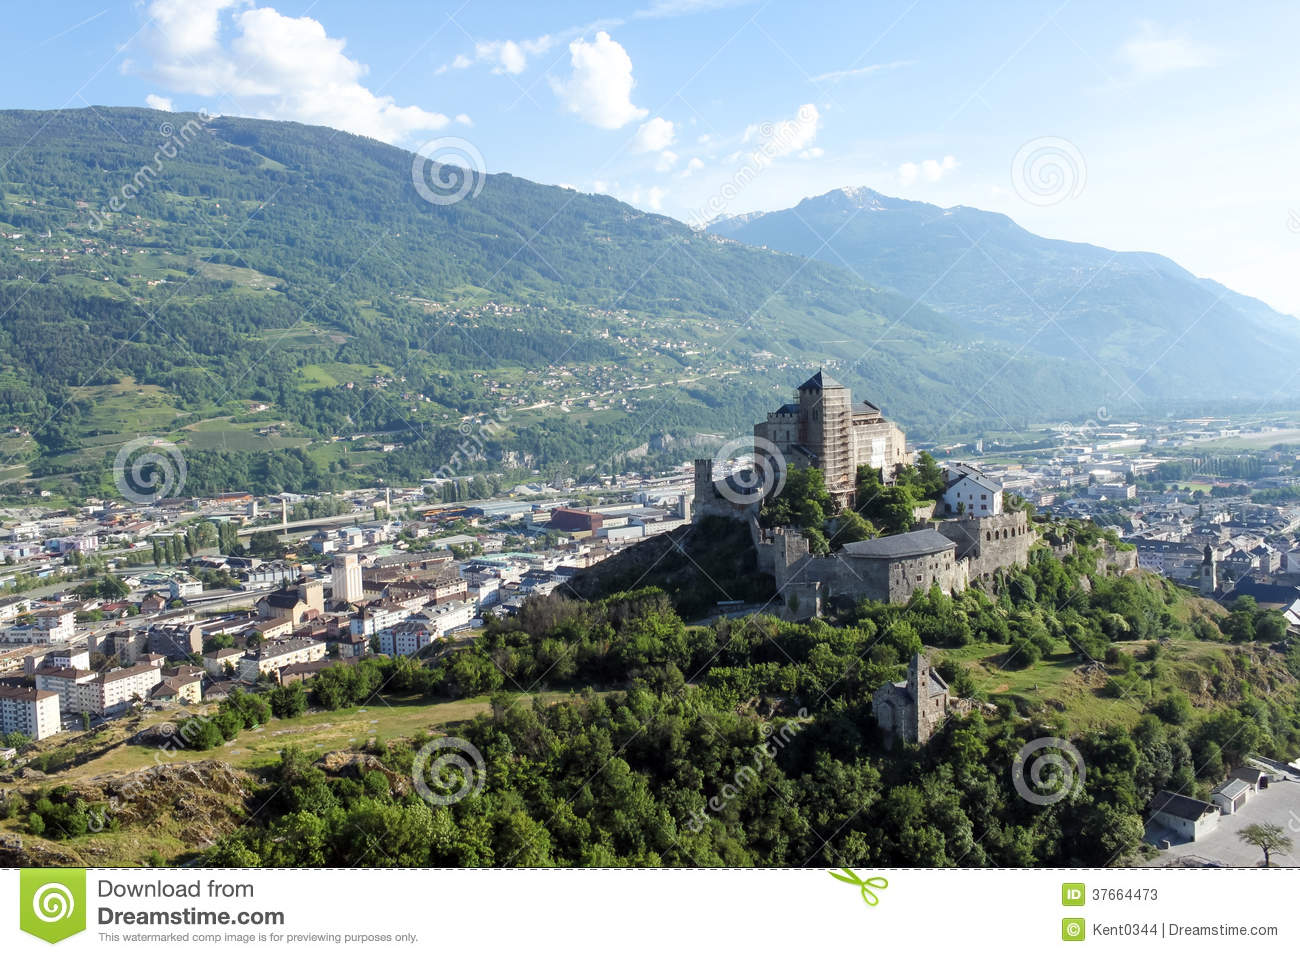 Sion, the canton of Valais in Switzerland